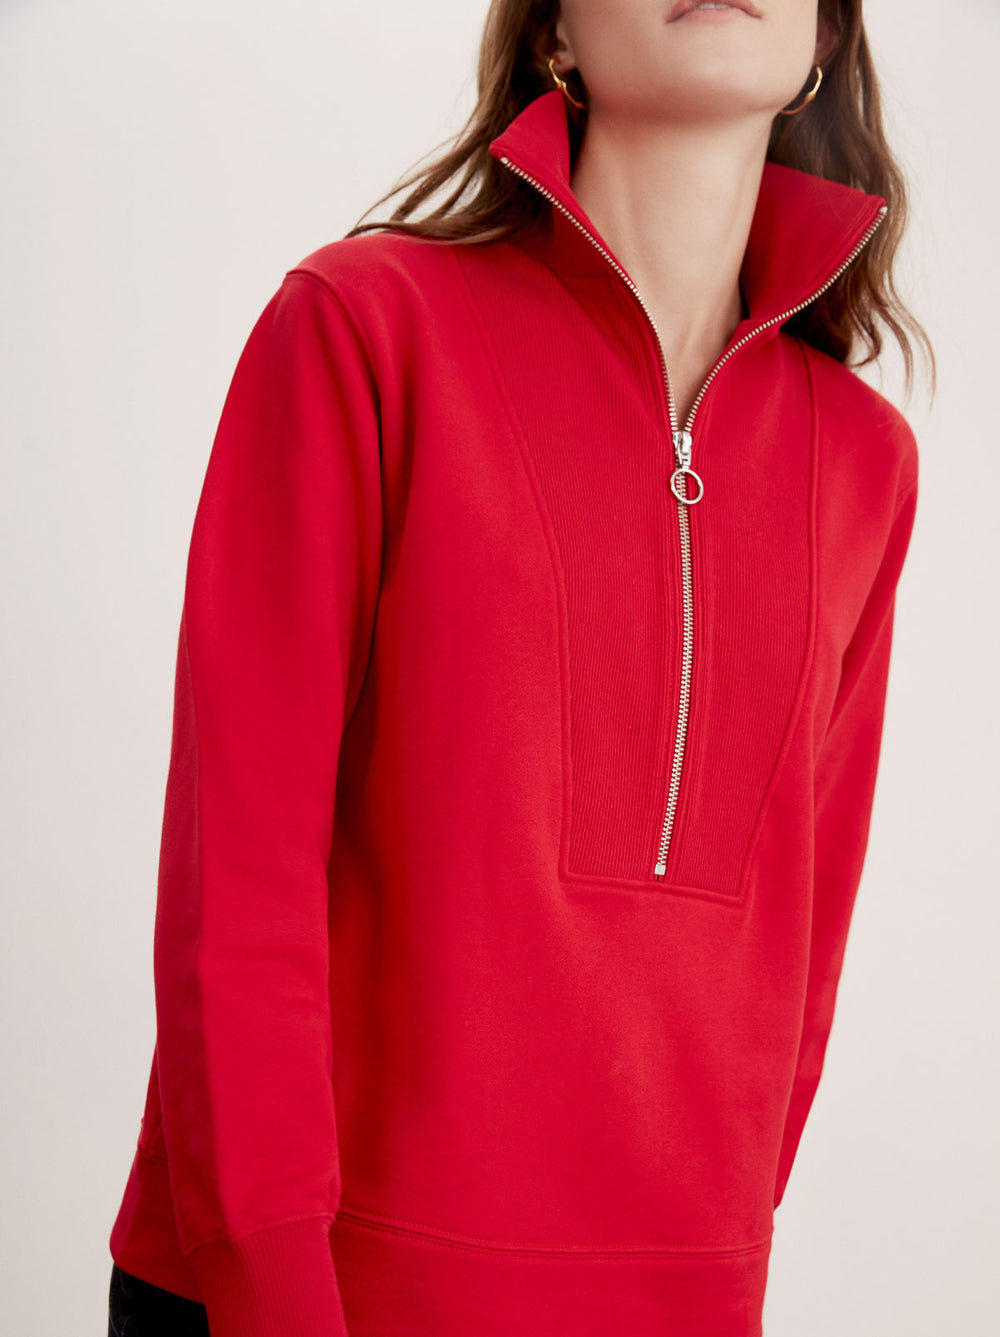 Francine Red Cotton Zip Sweatshirt by KITRI Studio